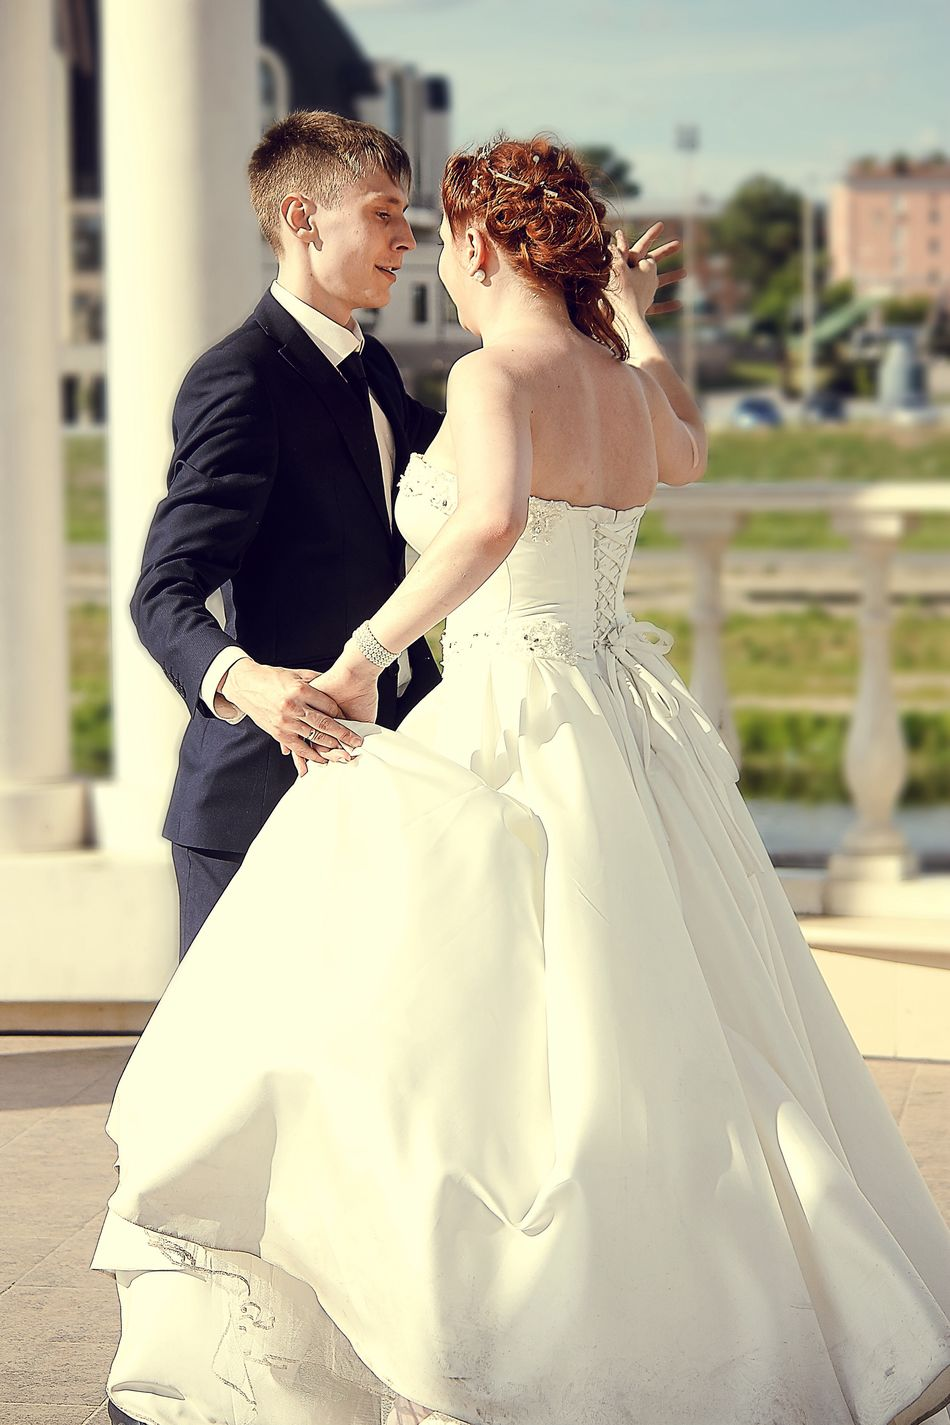 Wish all happy Friday . Russia Wedding Bride Love Wedding Dress Two People Formalwear Celebration Wedding Ceremony Adults Only Togetherness Life Events Romance Dedication Affectionate Bridegroom Happiness Young Adult Adult Outdoors Suit 2015